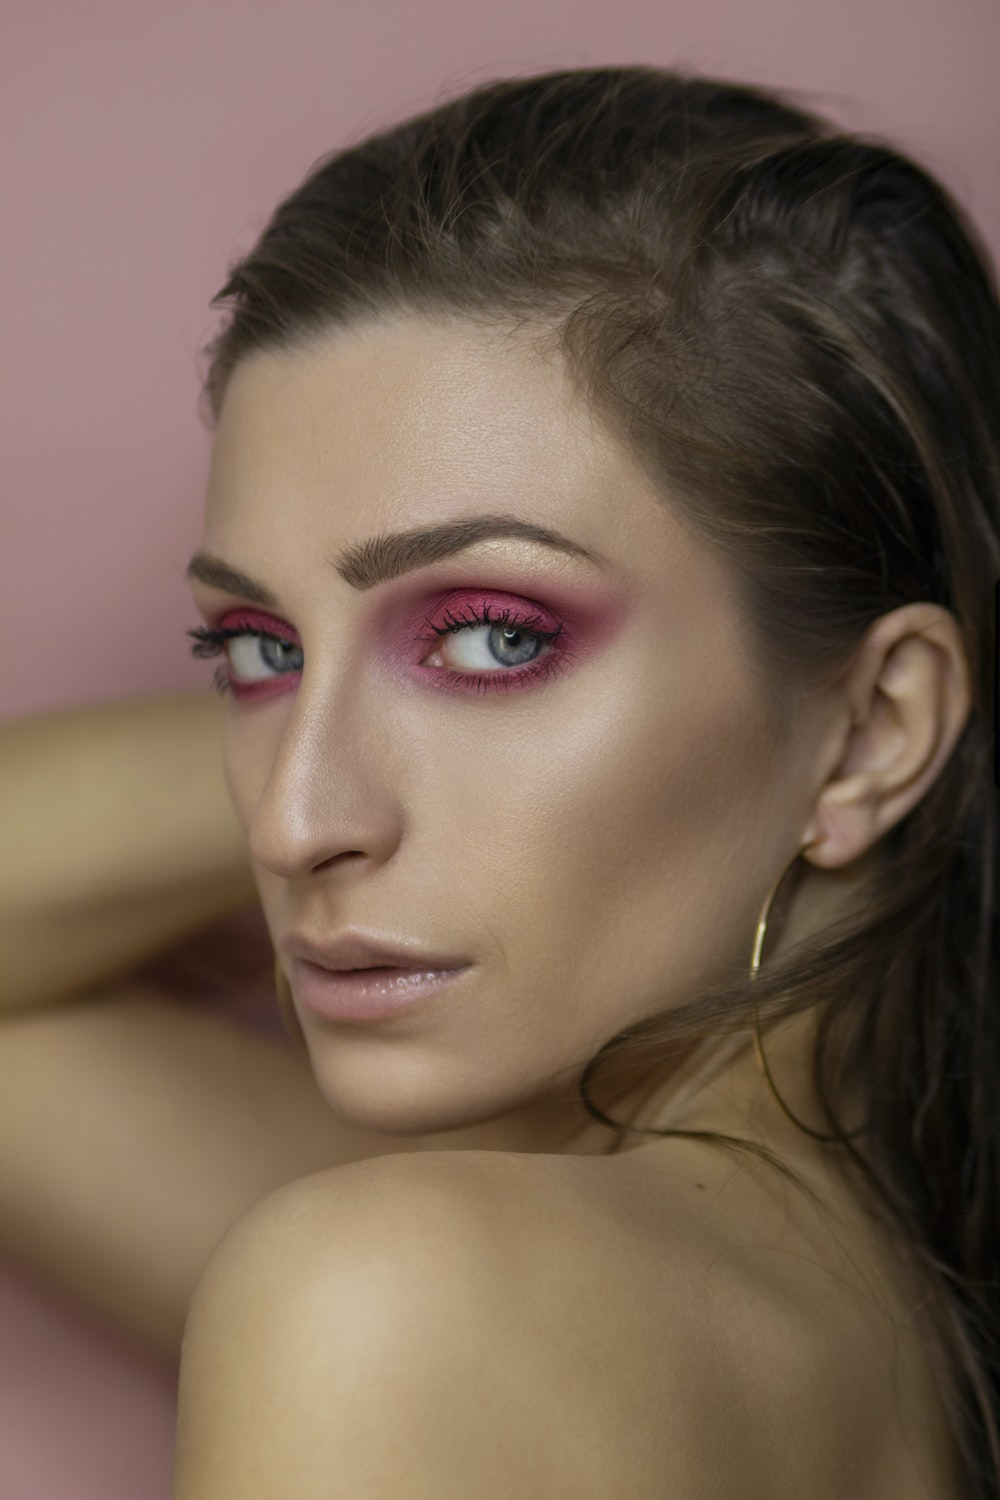 woman with pink lipstick and black mascara